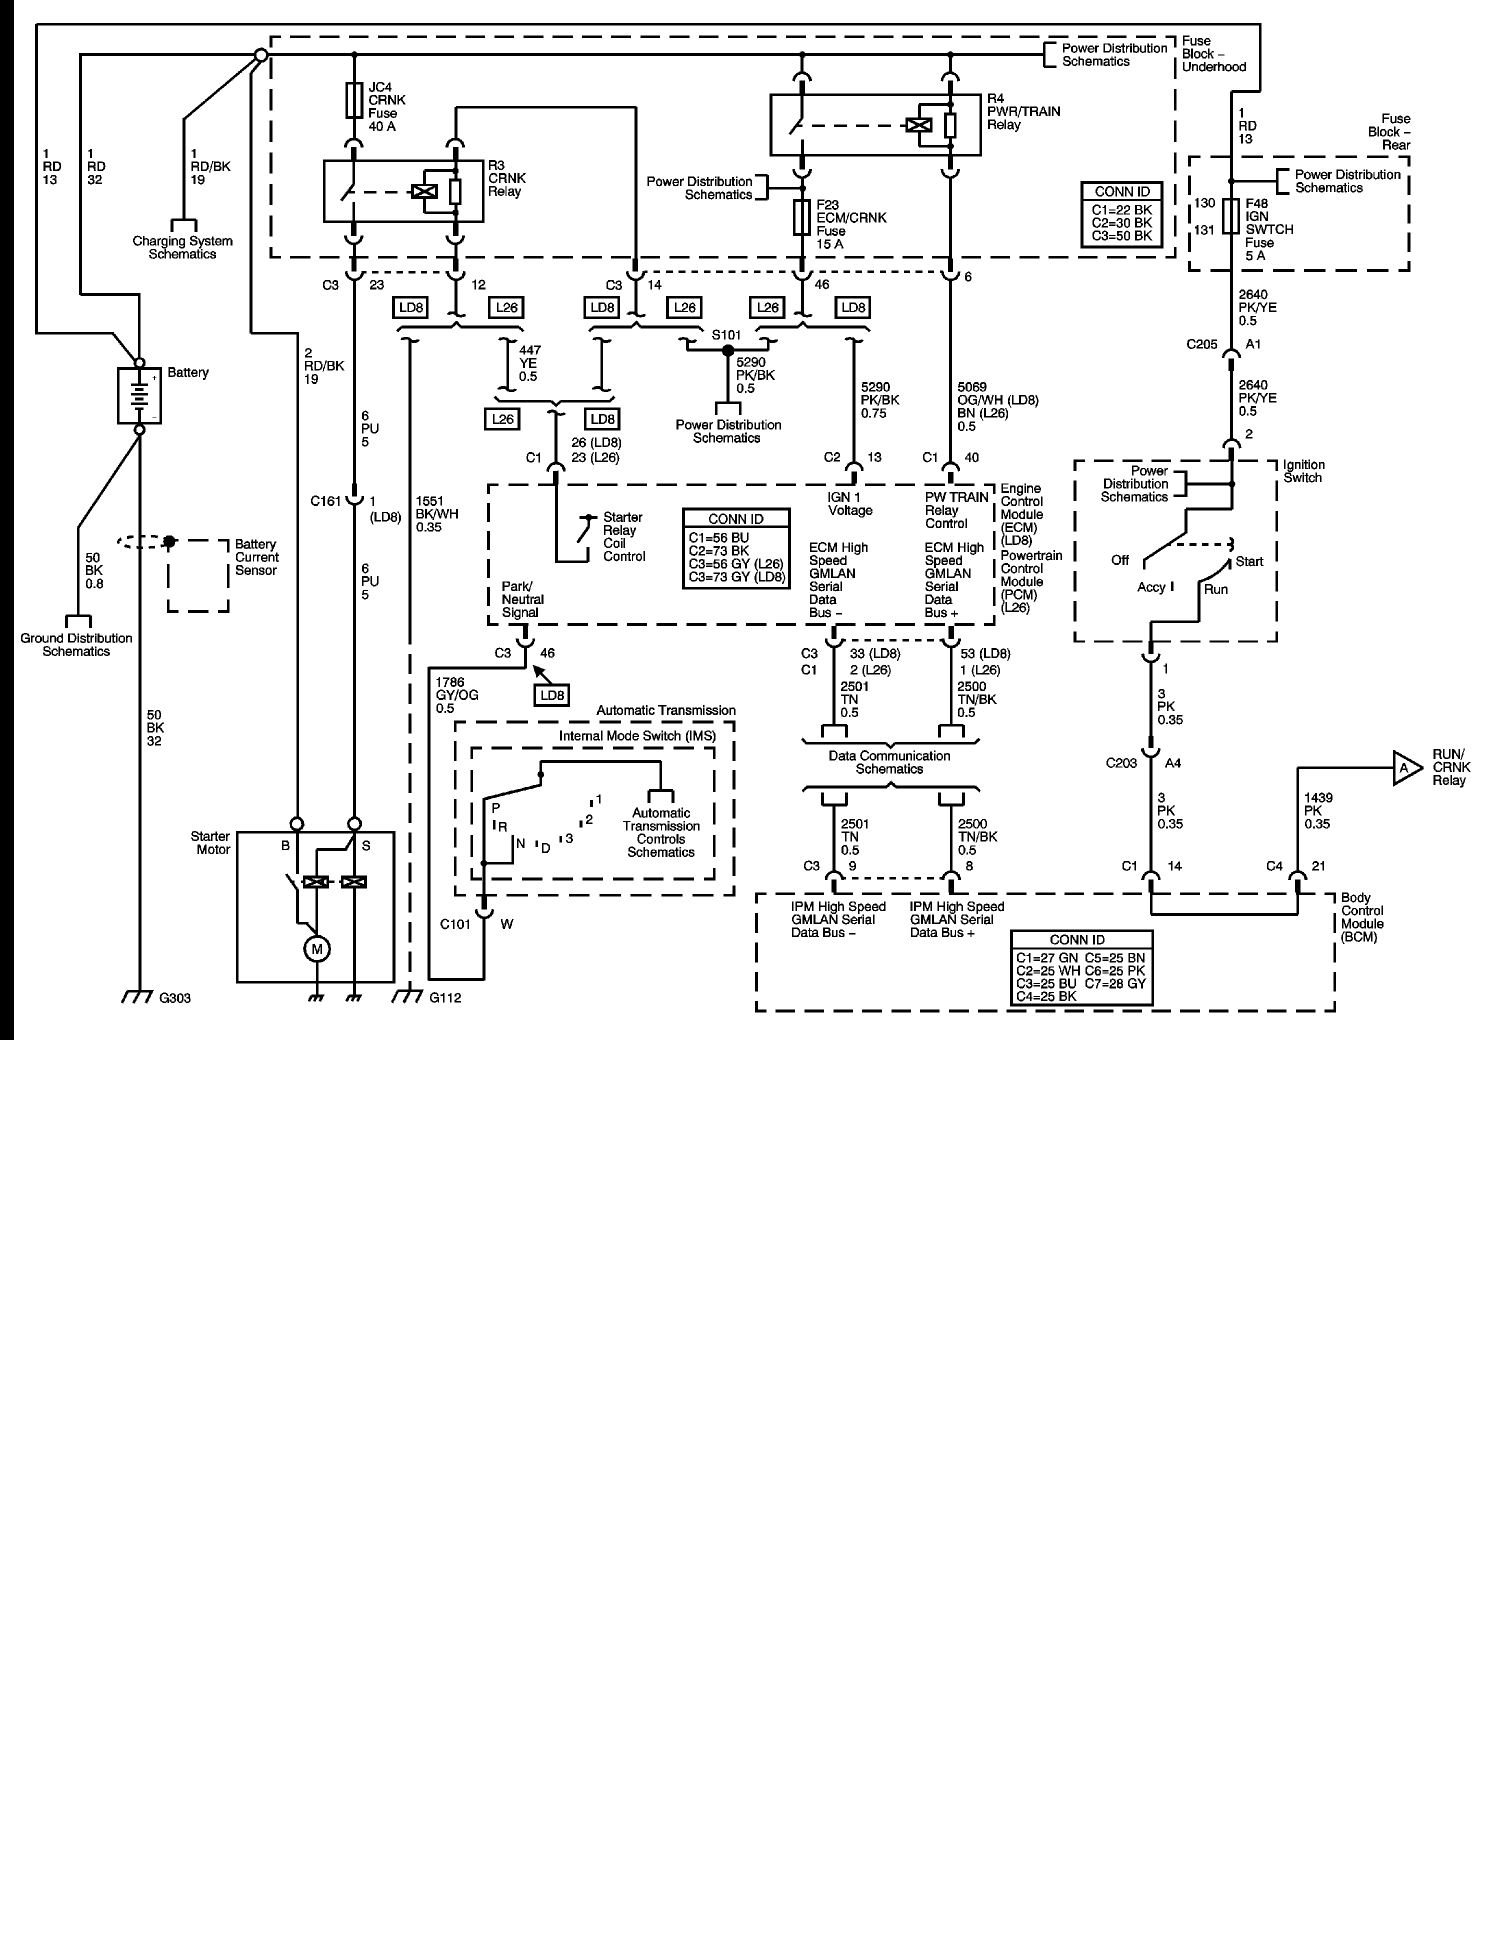 buick enclave wiring diagram find wiring diagram u2022 rh empcom co 2014 buick enclave wiring diagram 2011 buick enclave radio wiring diagram